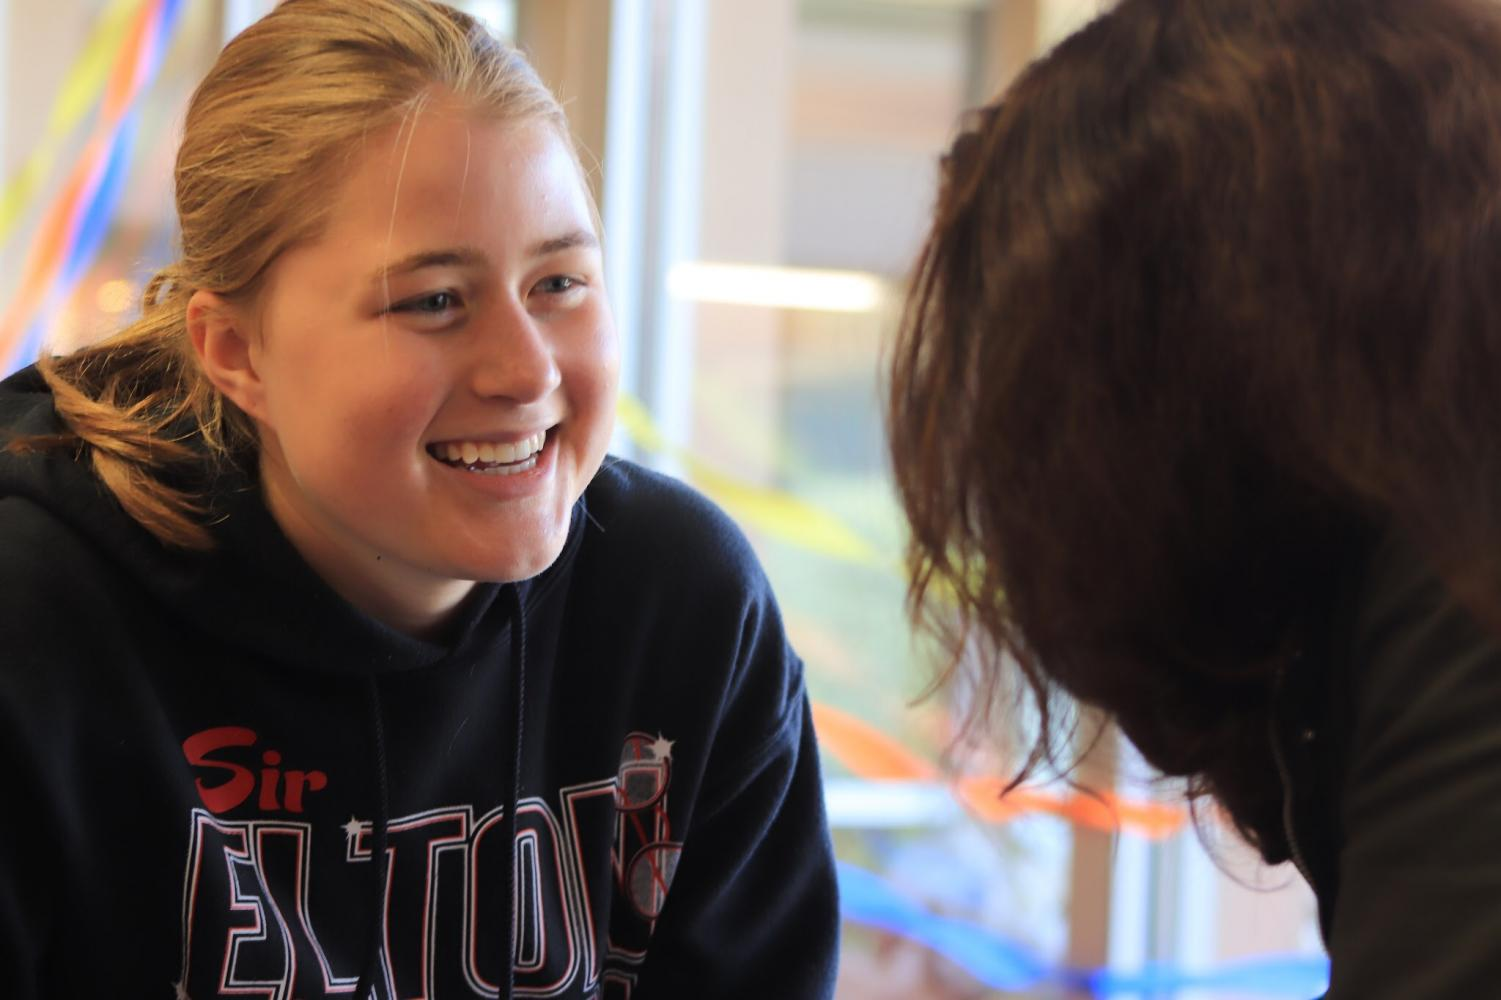 Senior Elise Lutz laughs with a friend in the student lounge.